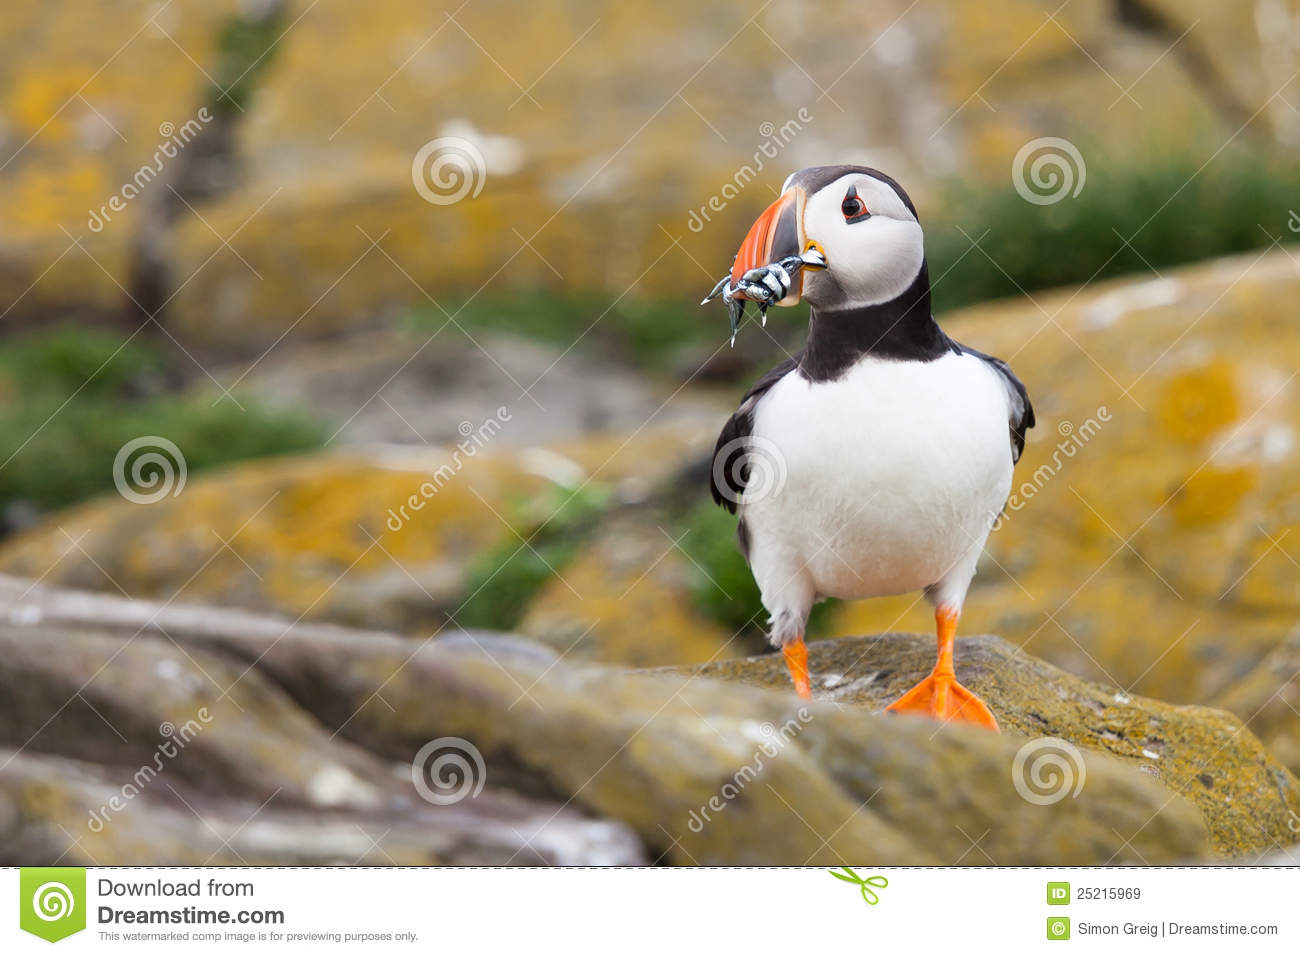 Puffin eating fish royalty free stock images image 25215969 for Dreaming of eating fish